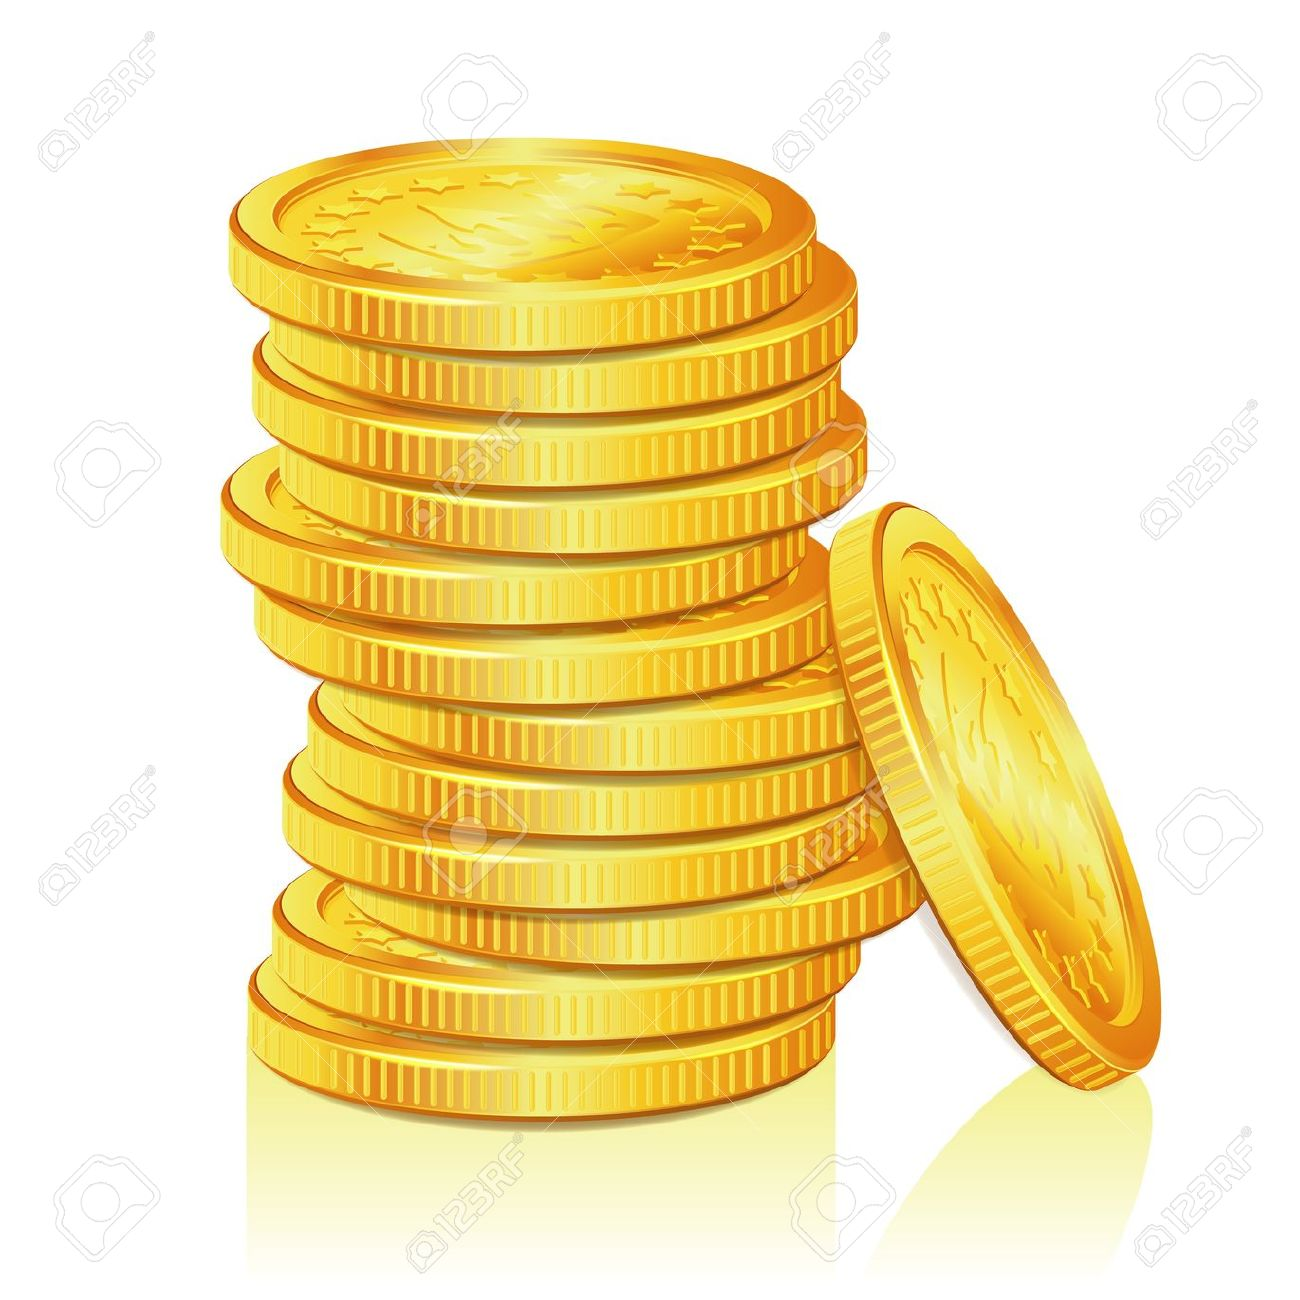 Gold stacks clipart.